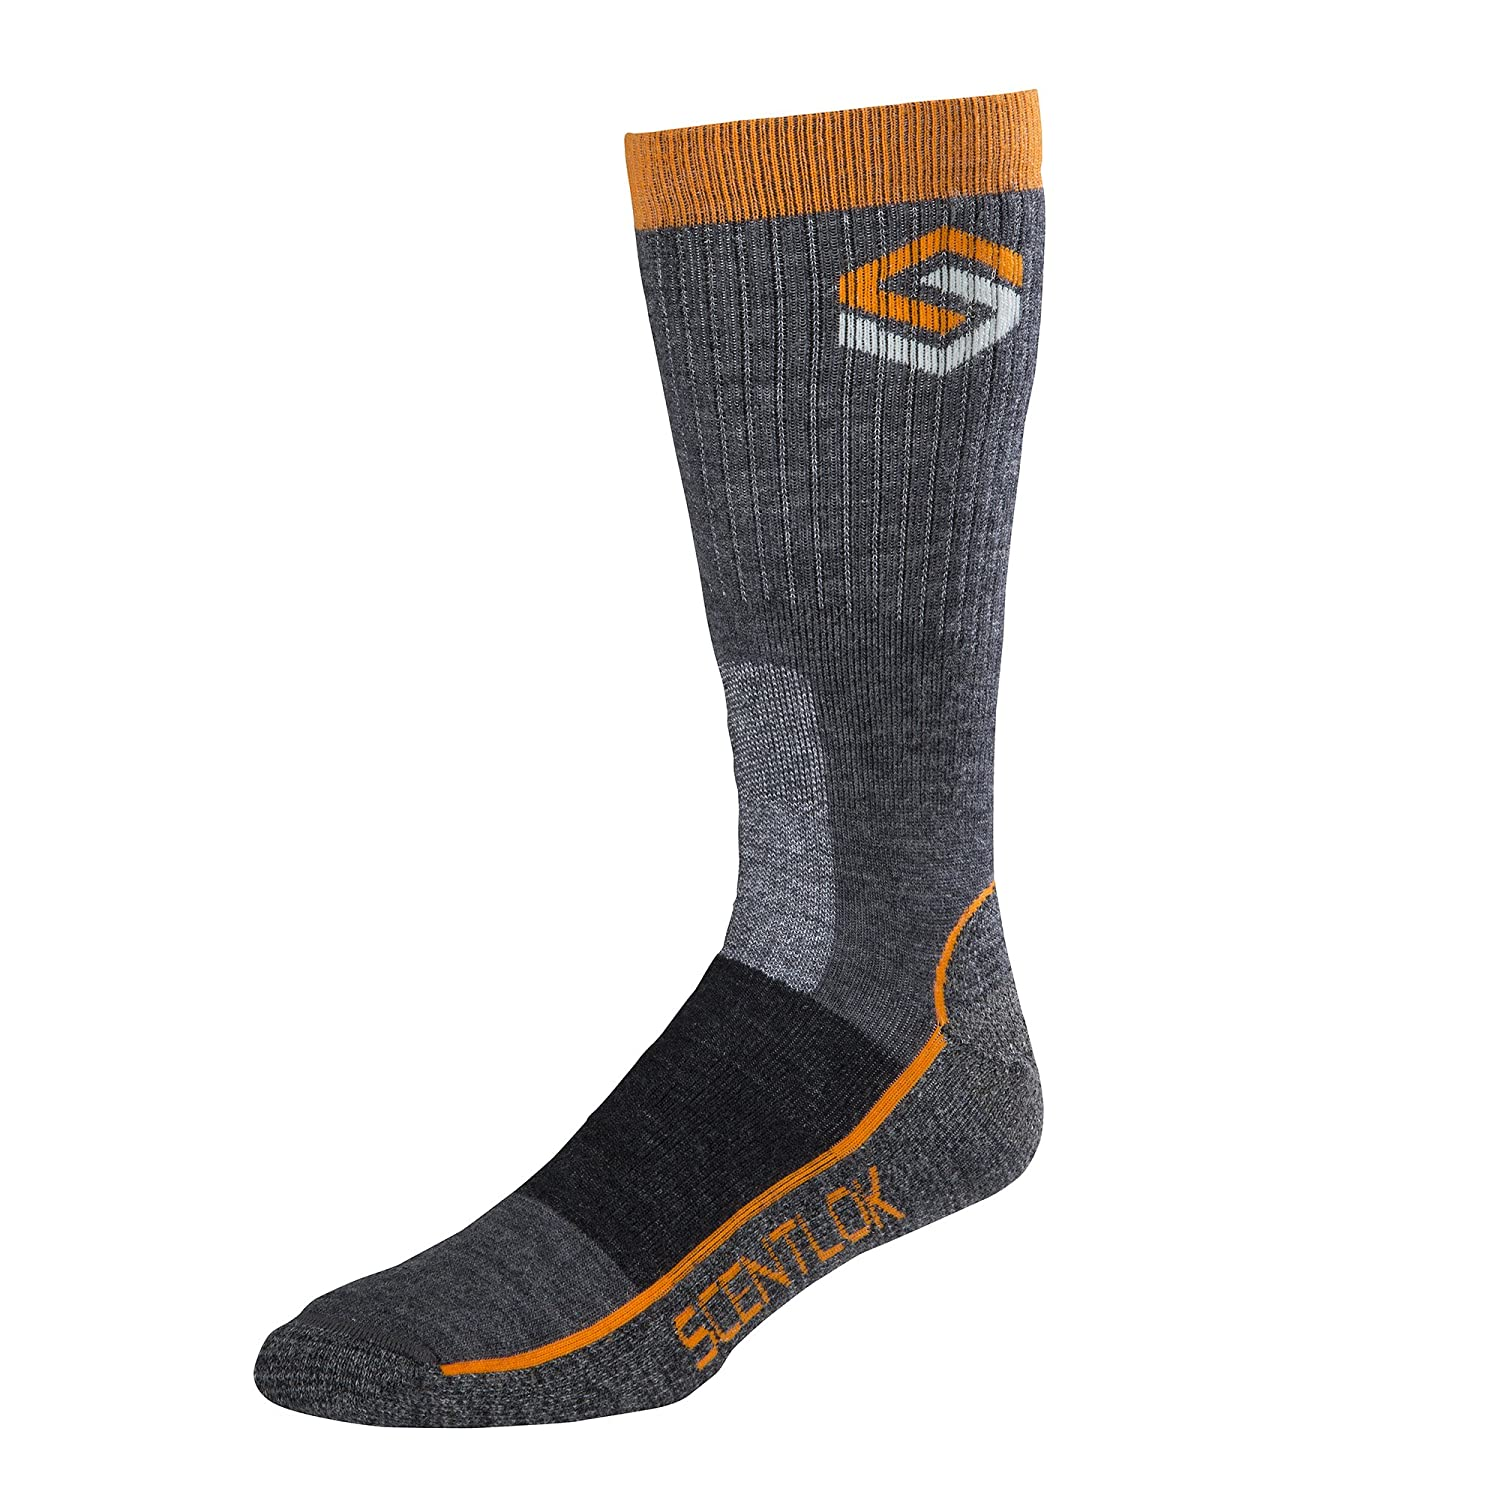 ScentLok Mens Merino Hiking Socks